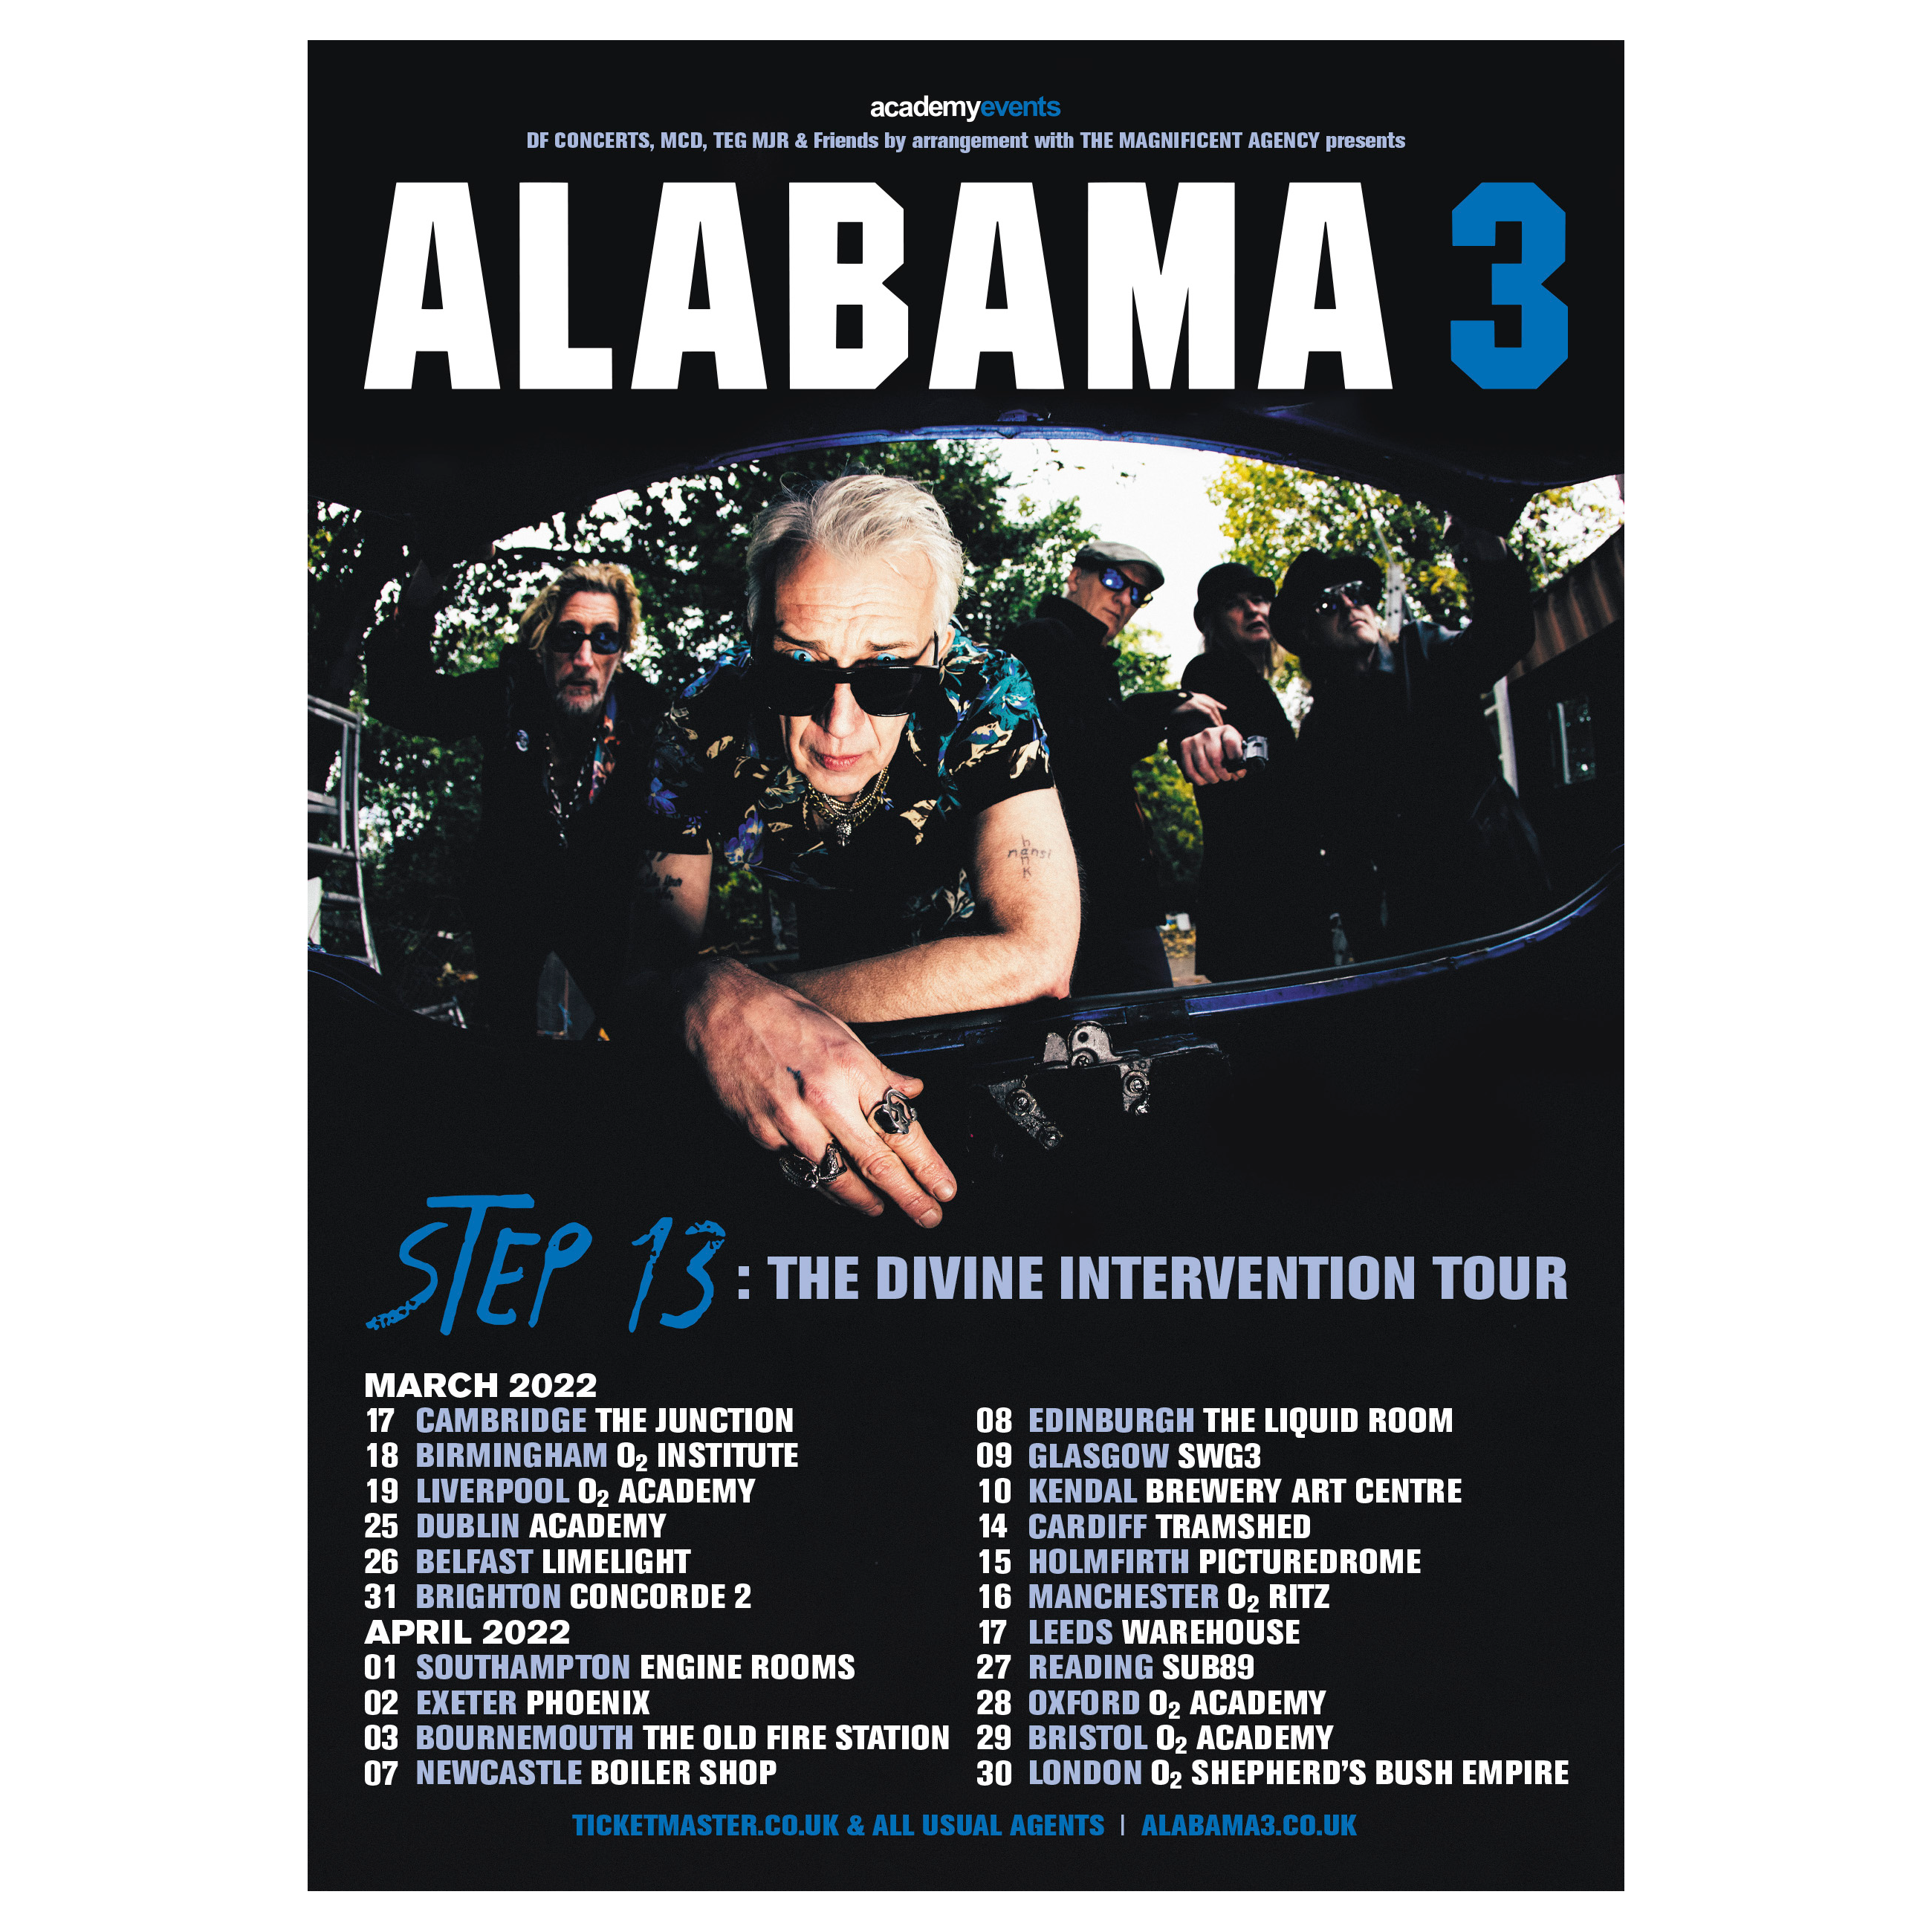 Buy Online Alabama 3 - Step 13: The Divine Intervention Tour